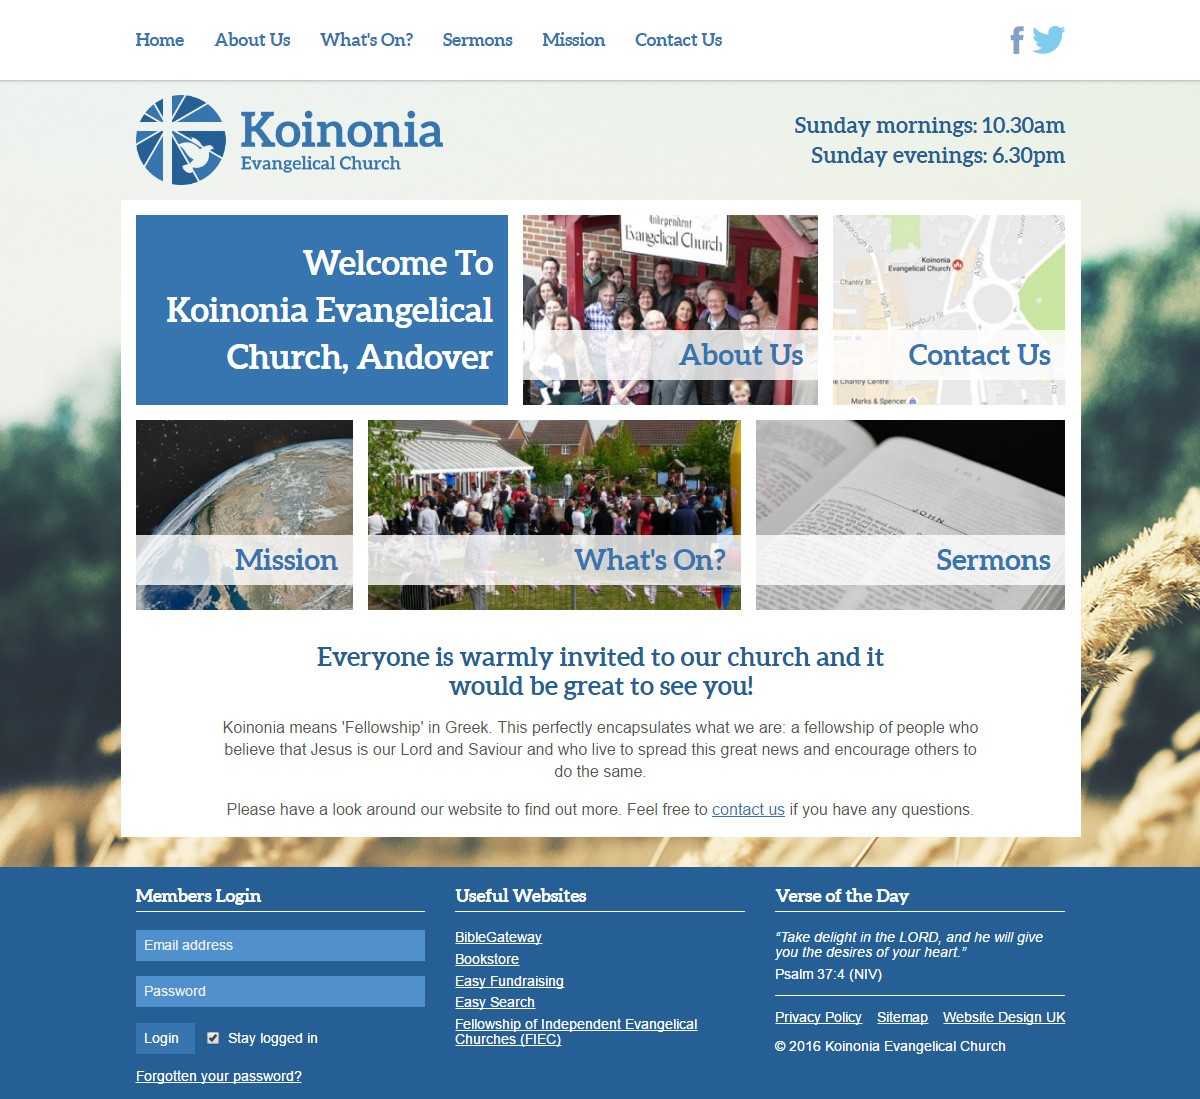 Koinonia Evangelical Church website